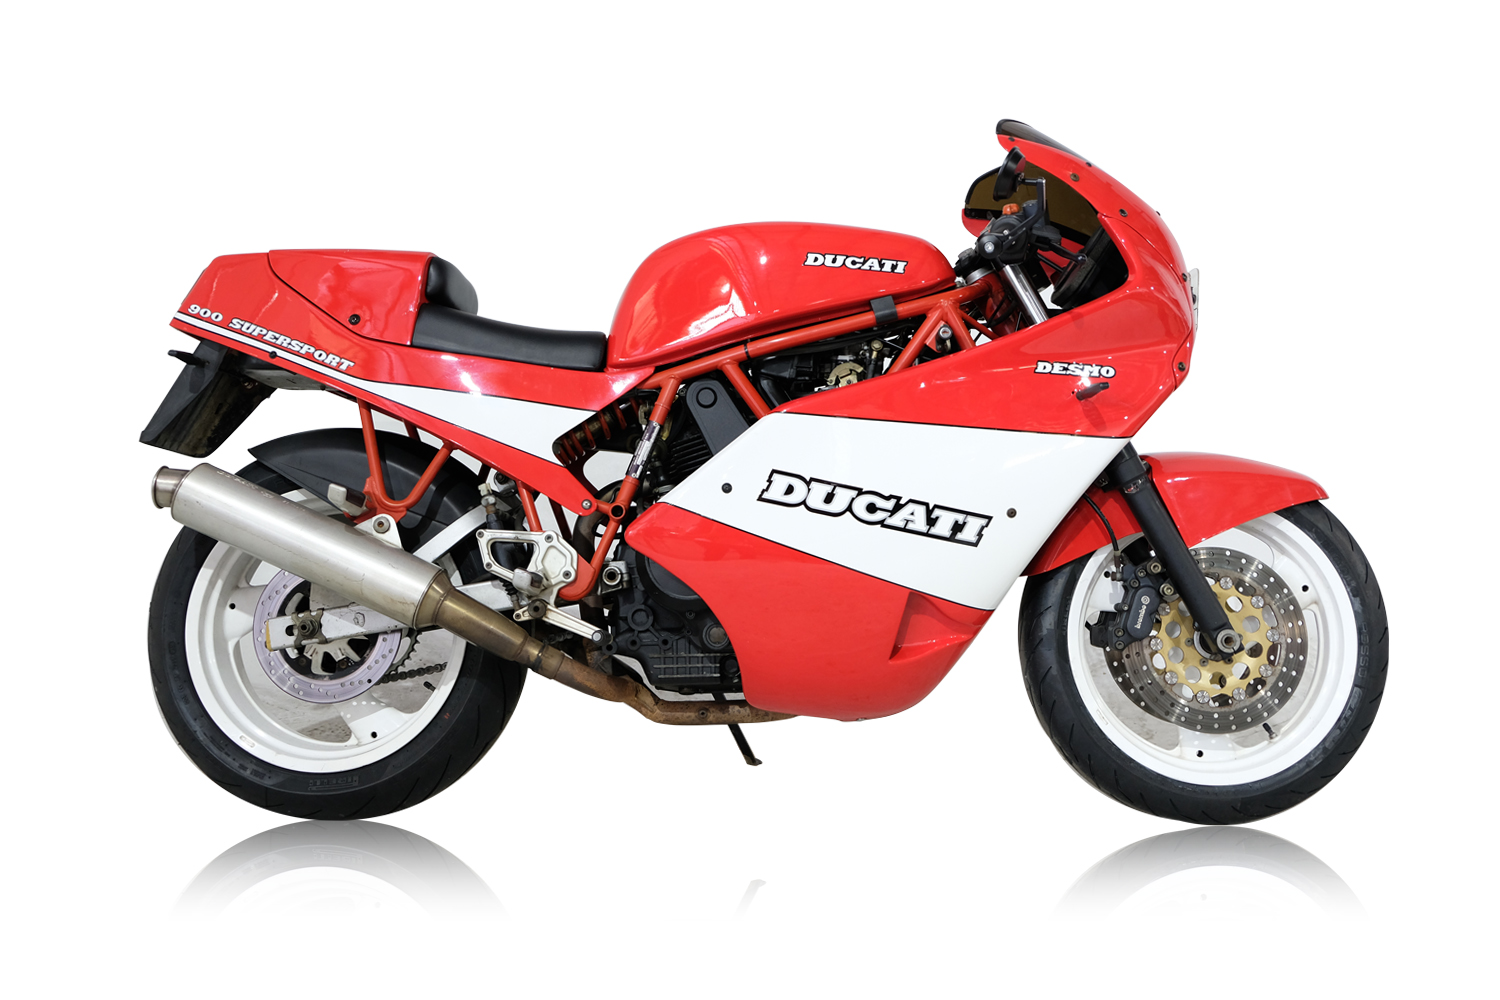 Ducati Desmo_0028_Background.jpg